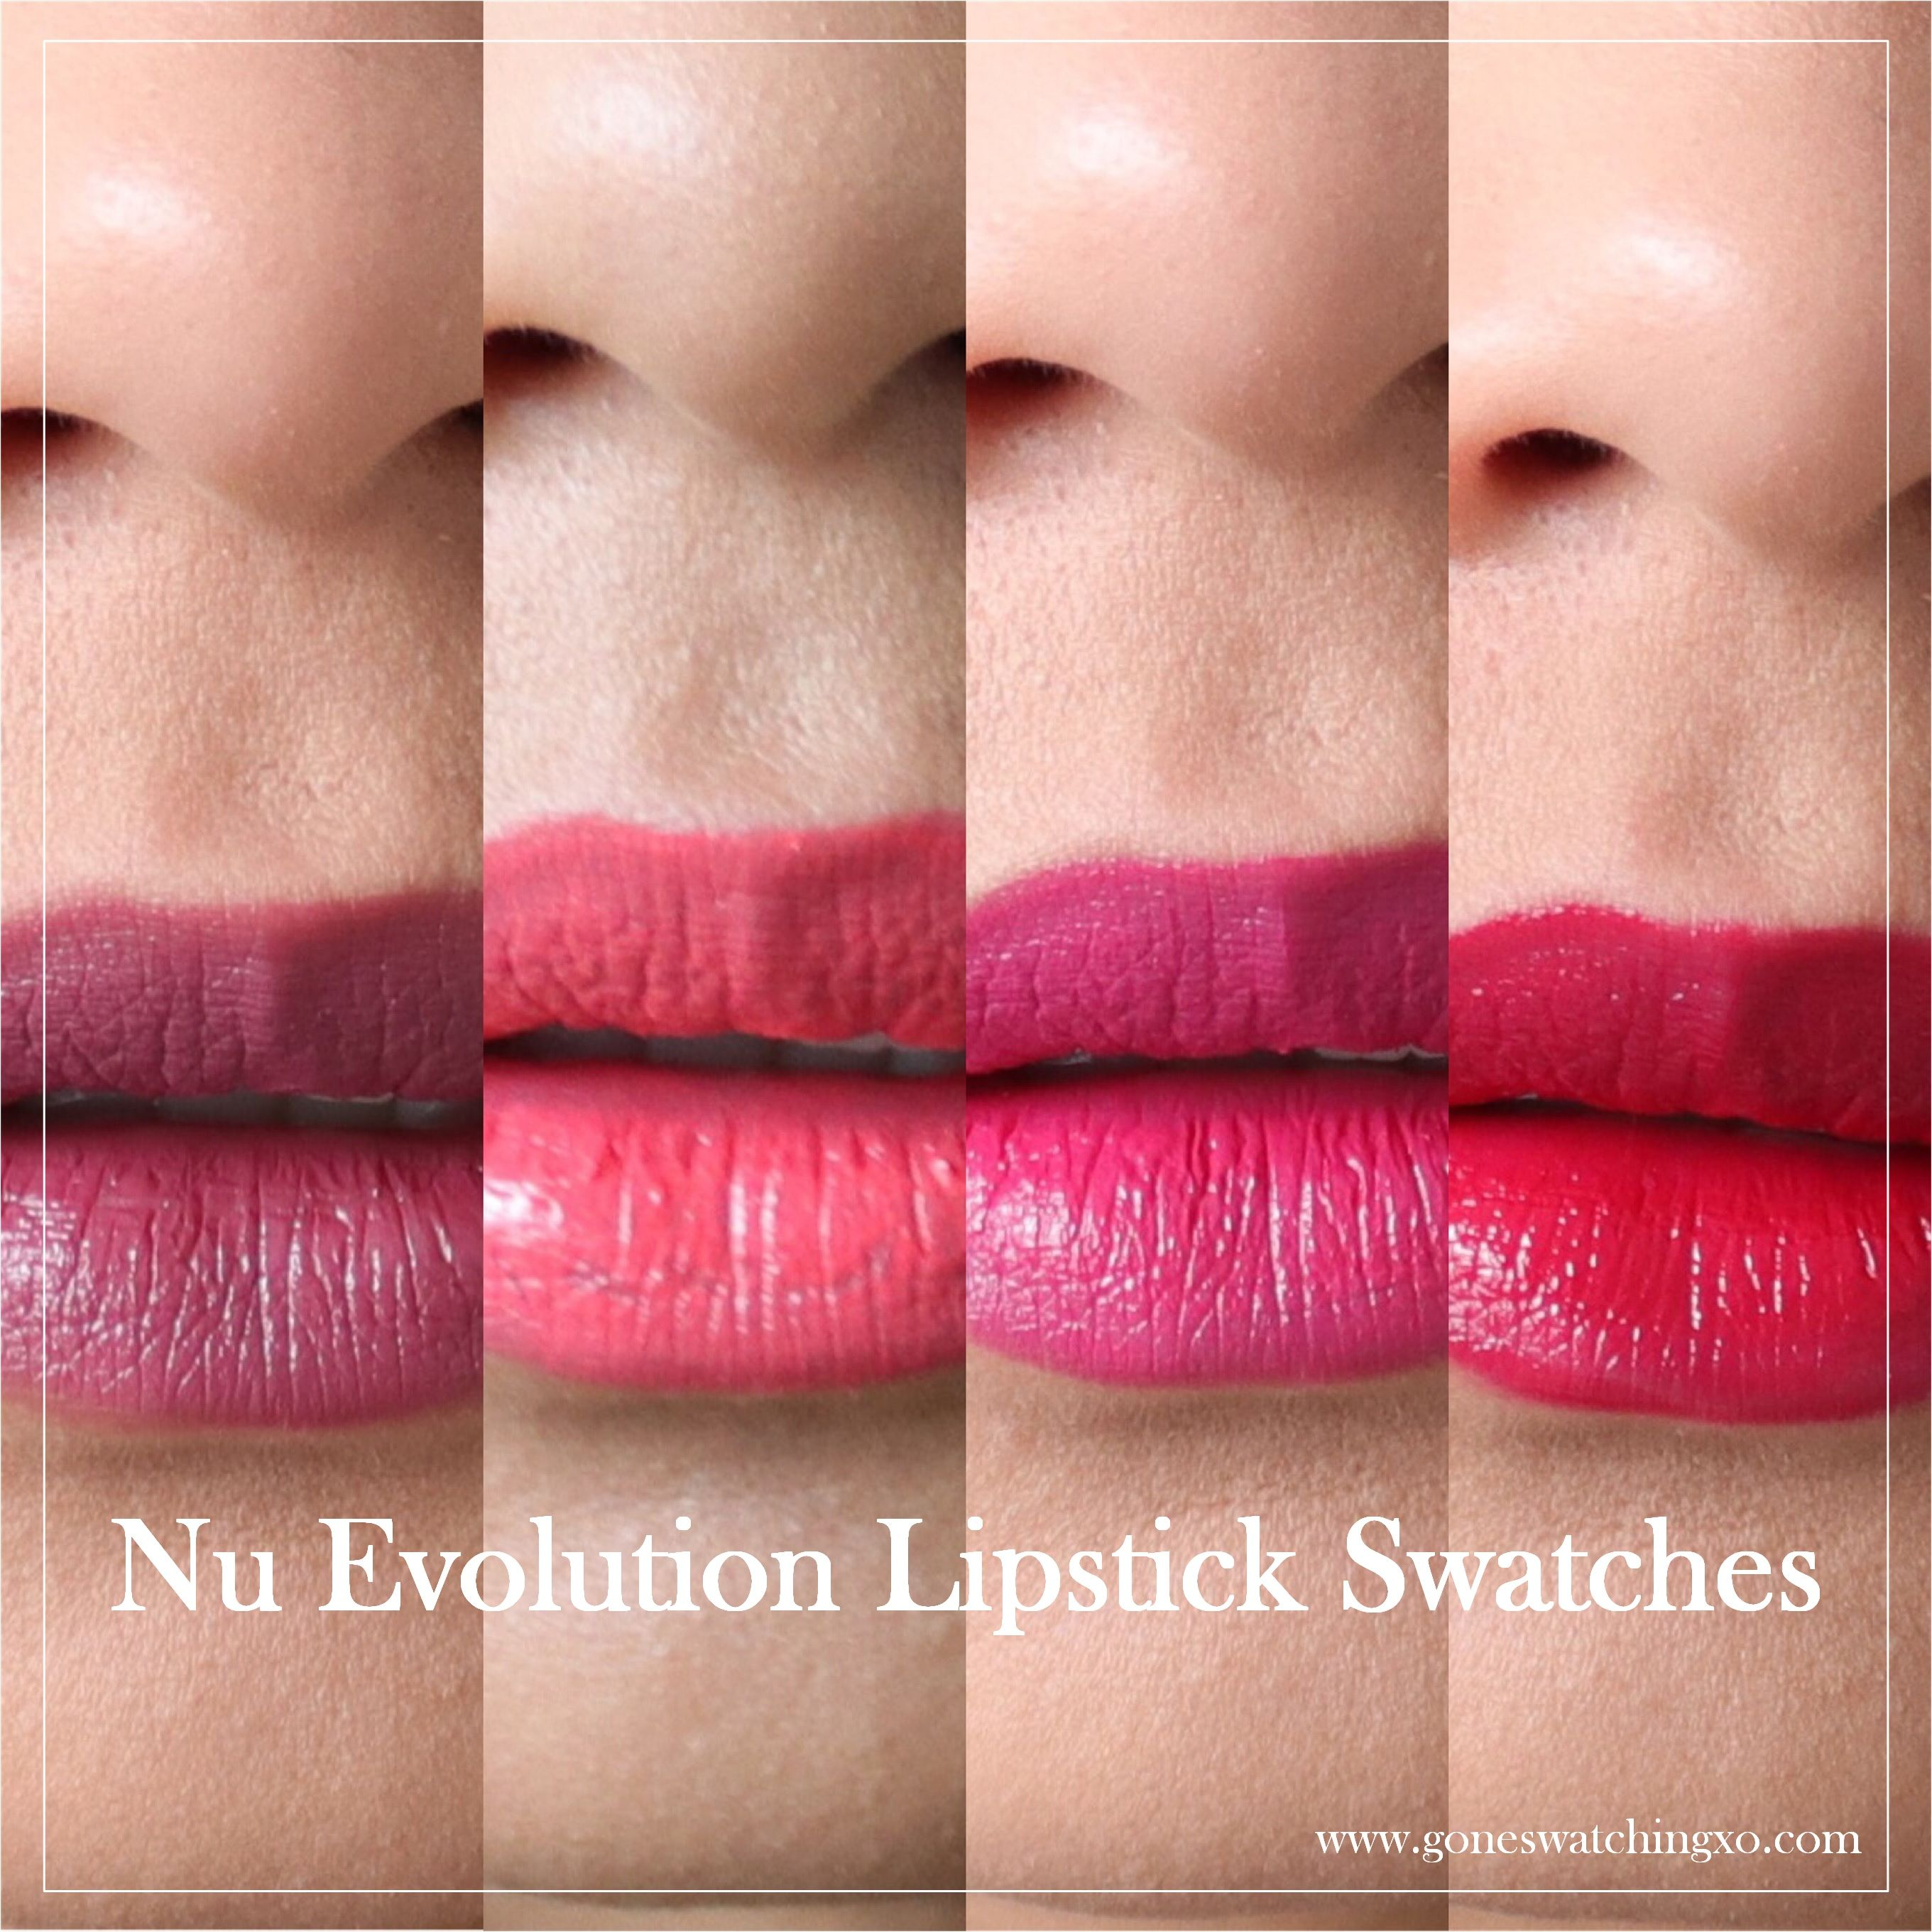 Pin On Organic And Natural Makeup Swatches